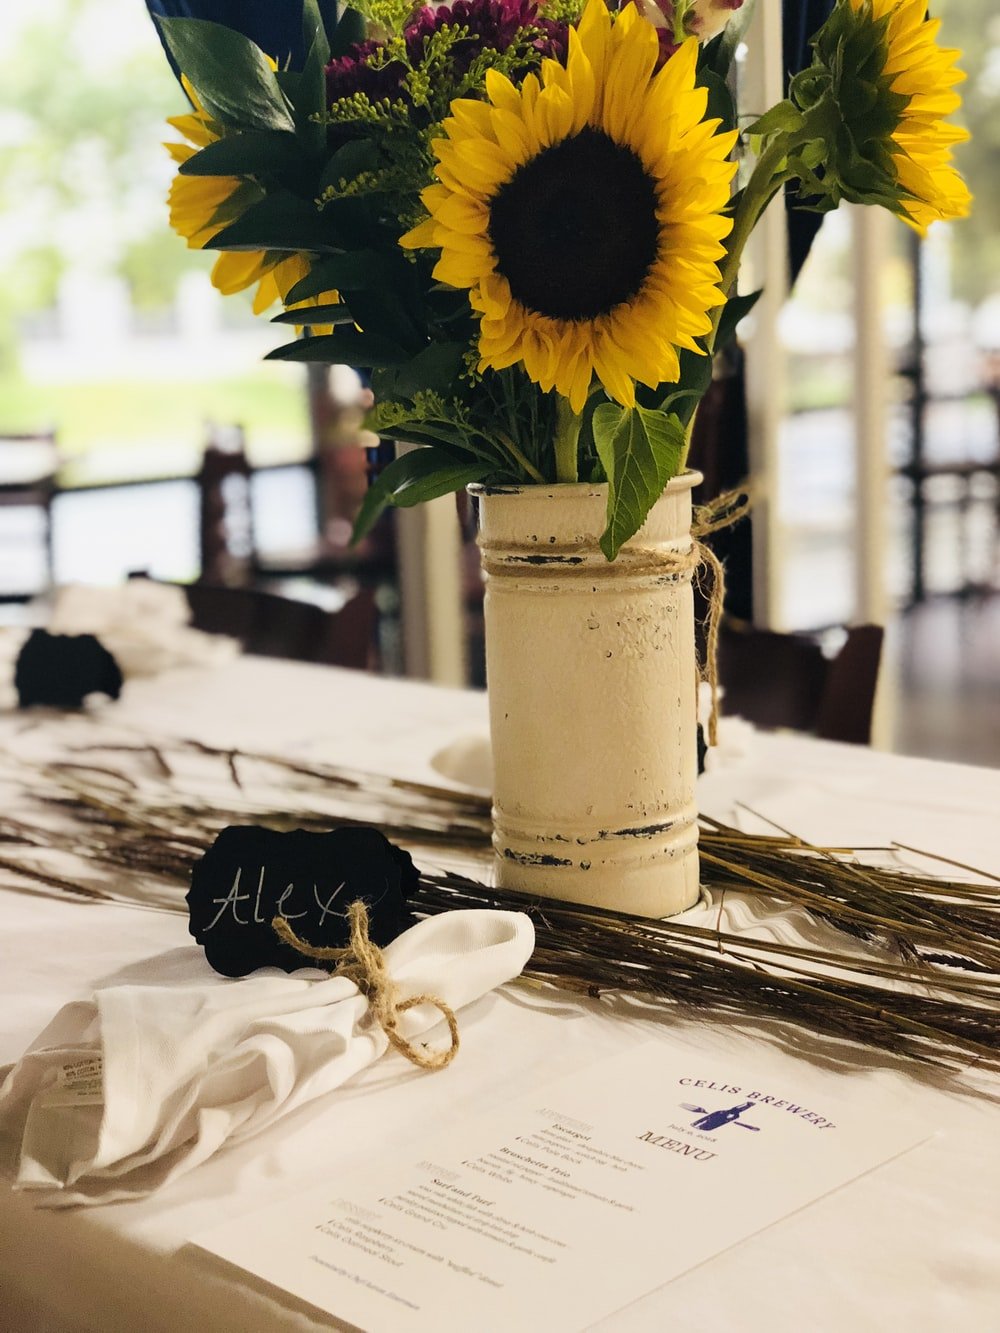 yellow sunflower in vase on top of table